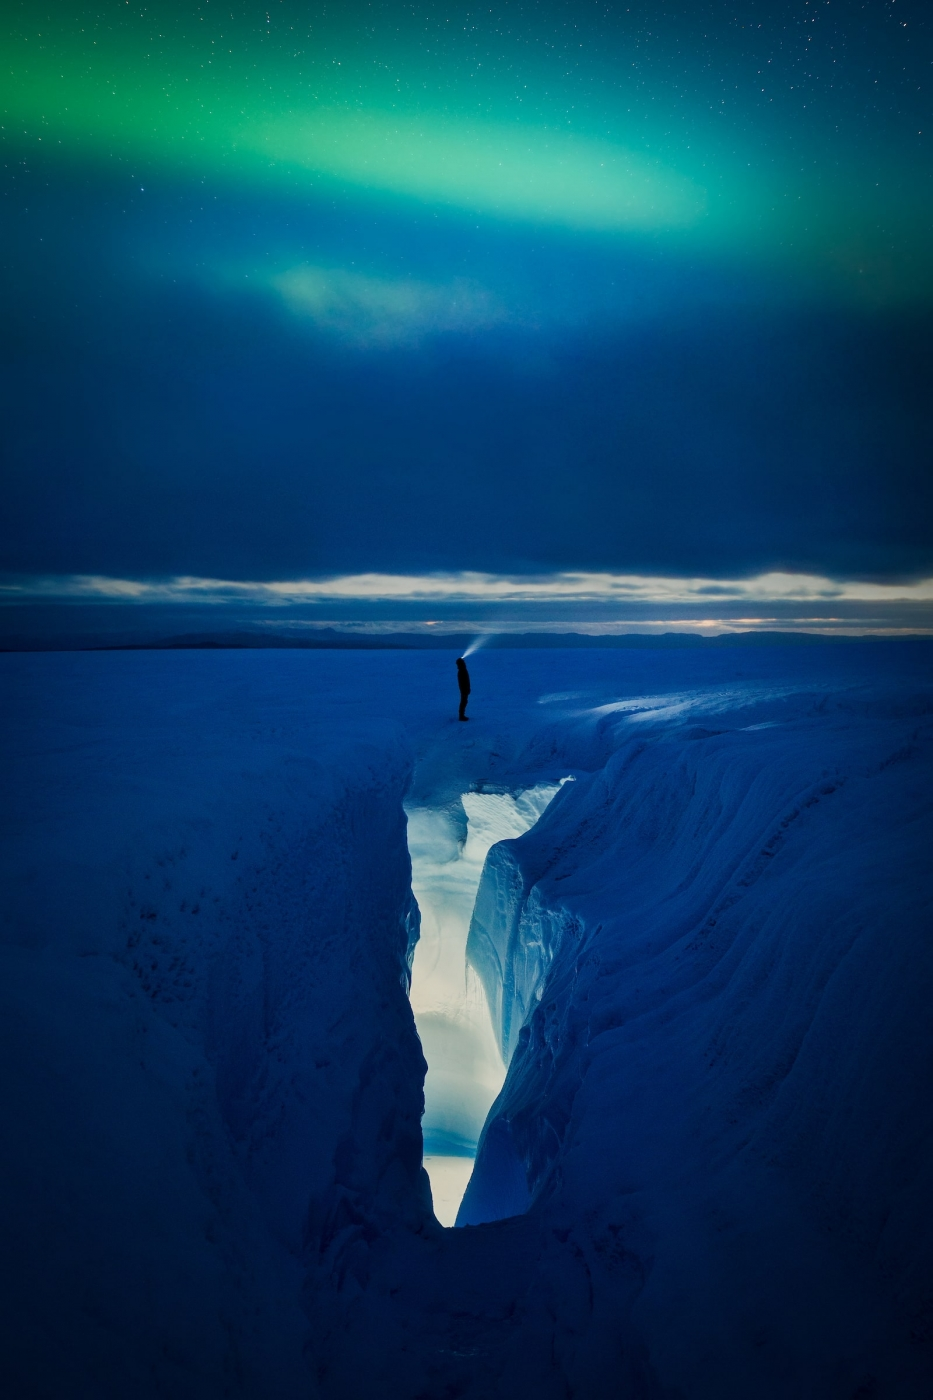 A man with a flash light looking up to the northern lights by a crevasse on the Greeland Ice Sheet near Kangerlussuaq. Photo by Paul Zizka - Visit Greenland